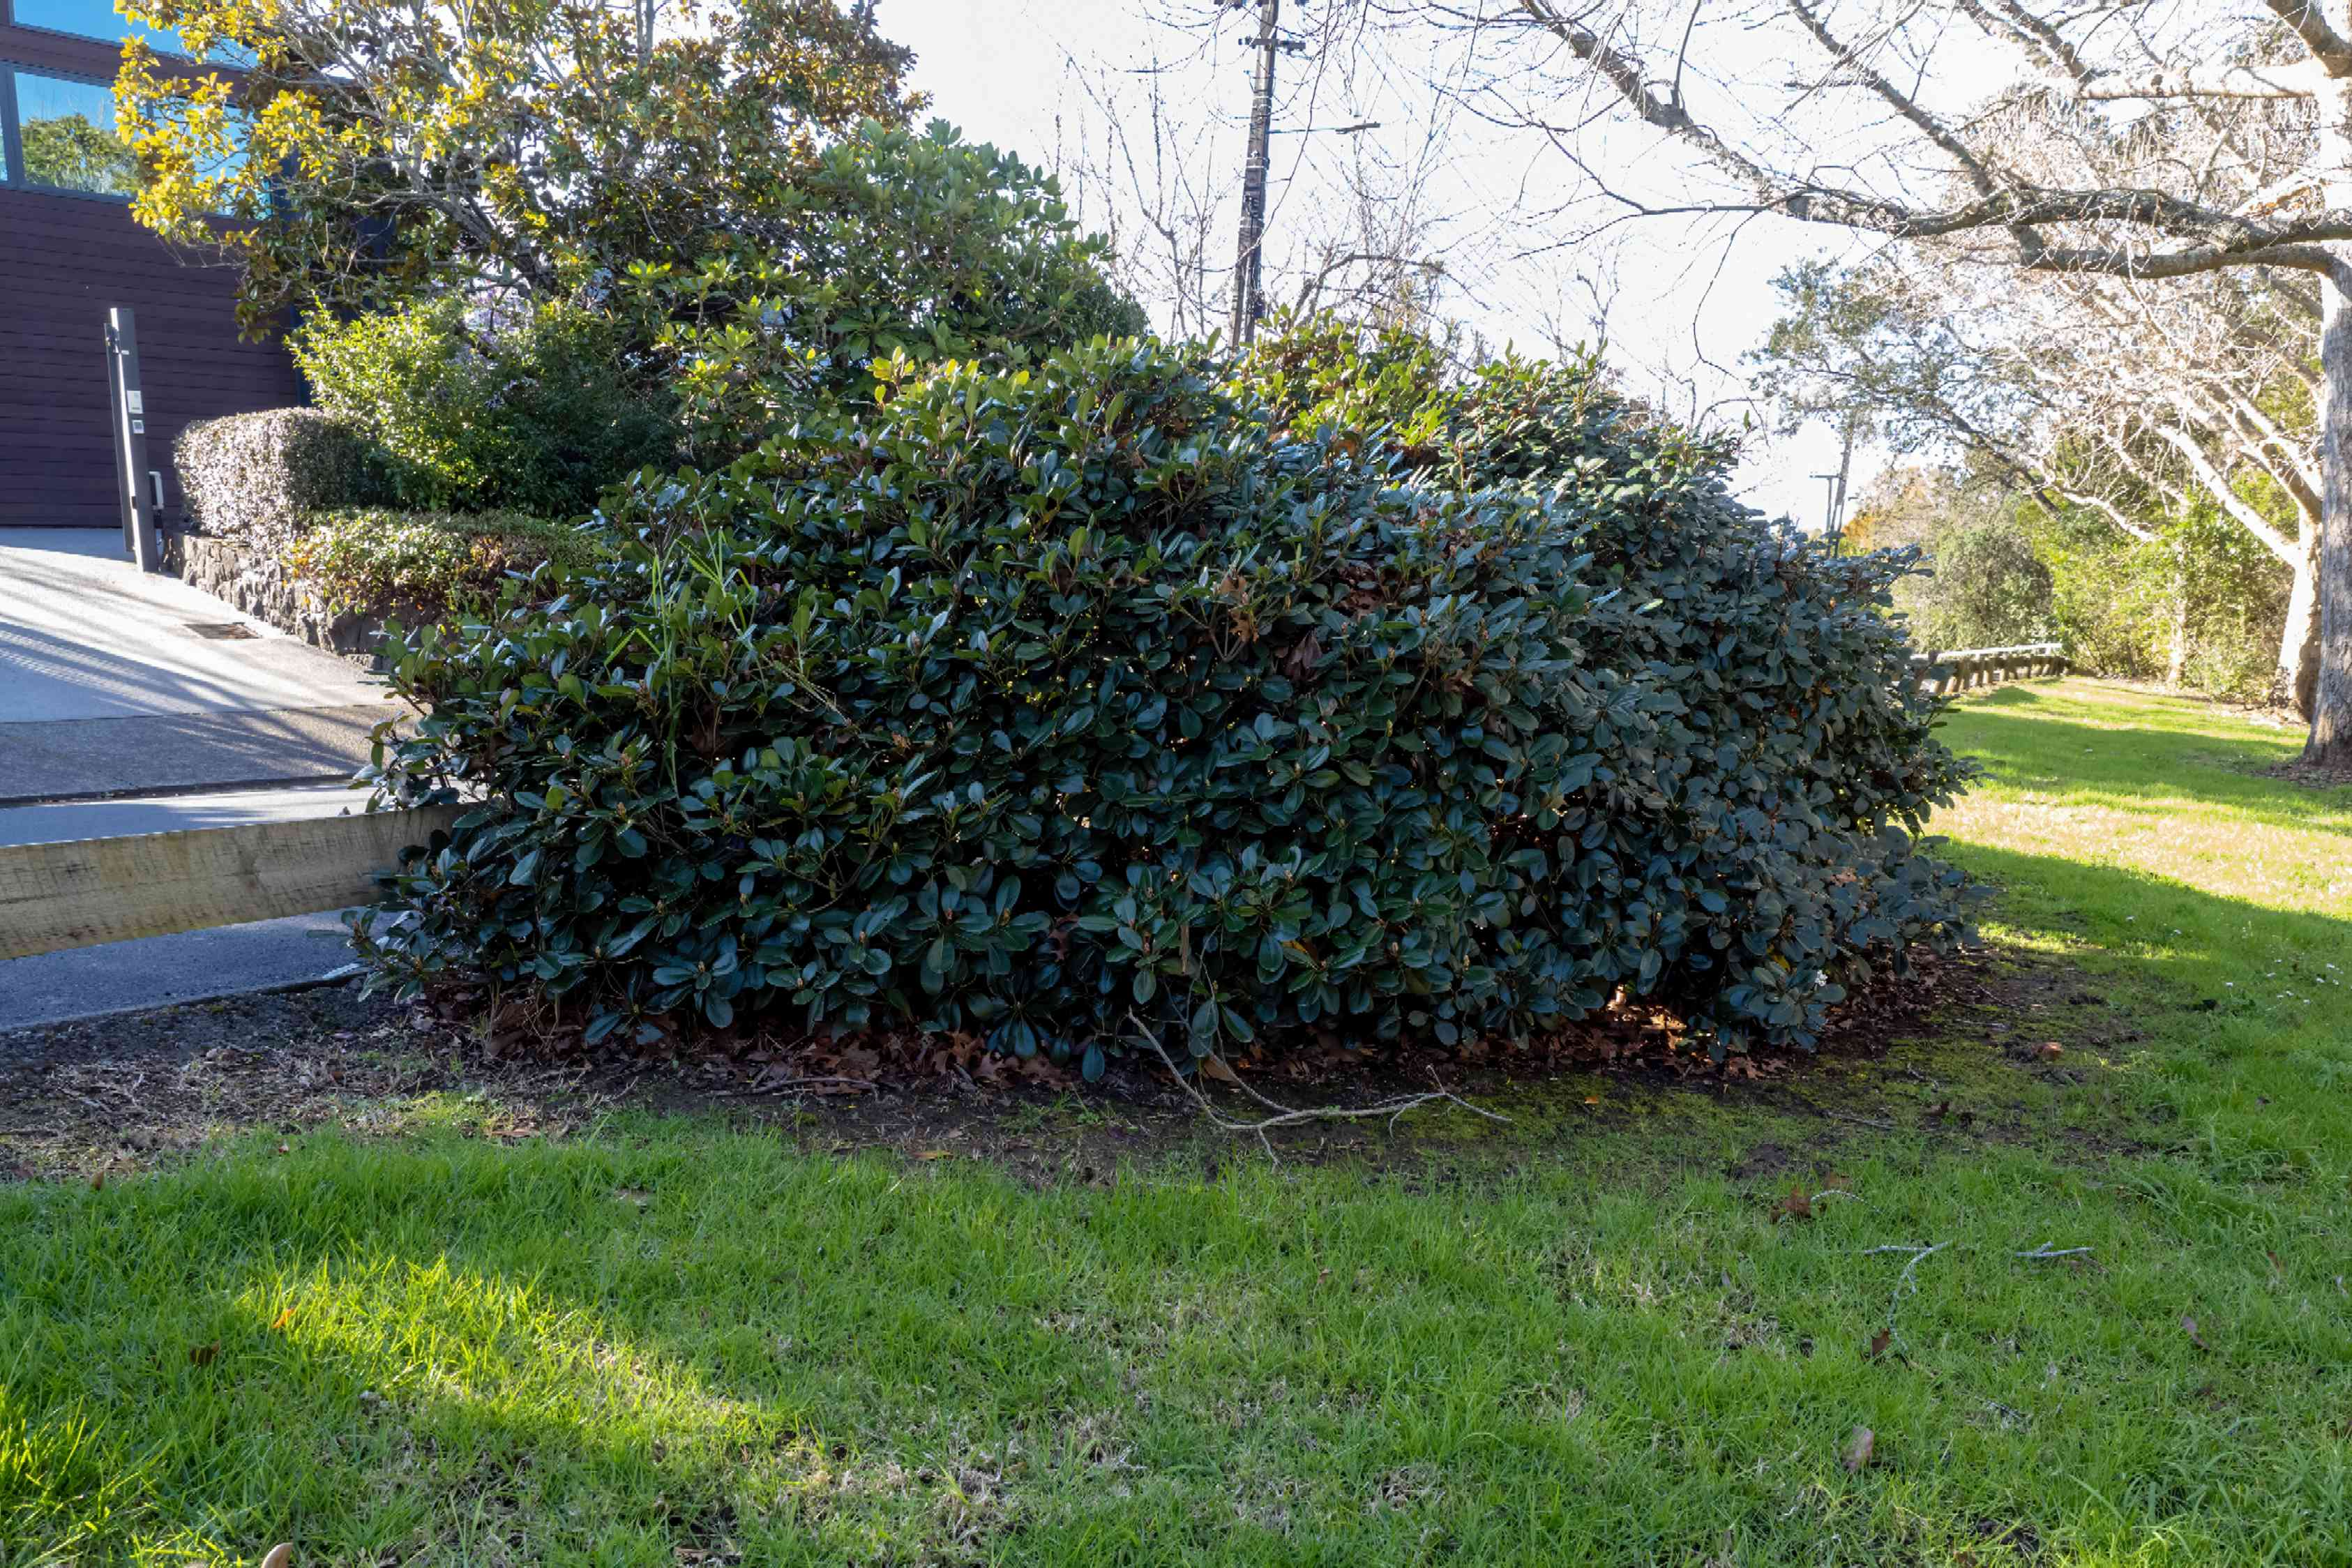 Indian hawthorn shrub growing in a rounded shape near street